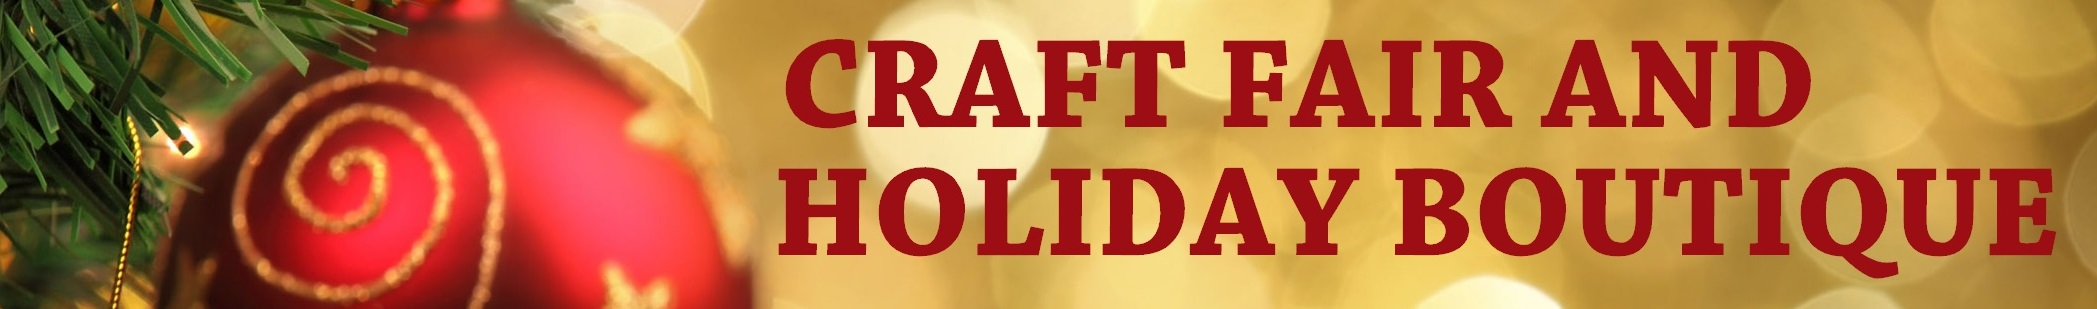 4th Annual Craft Fair and Holiday Boutique